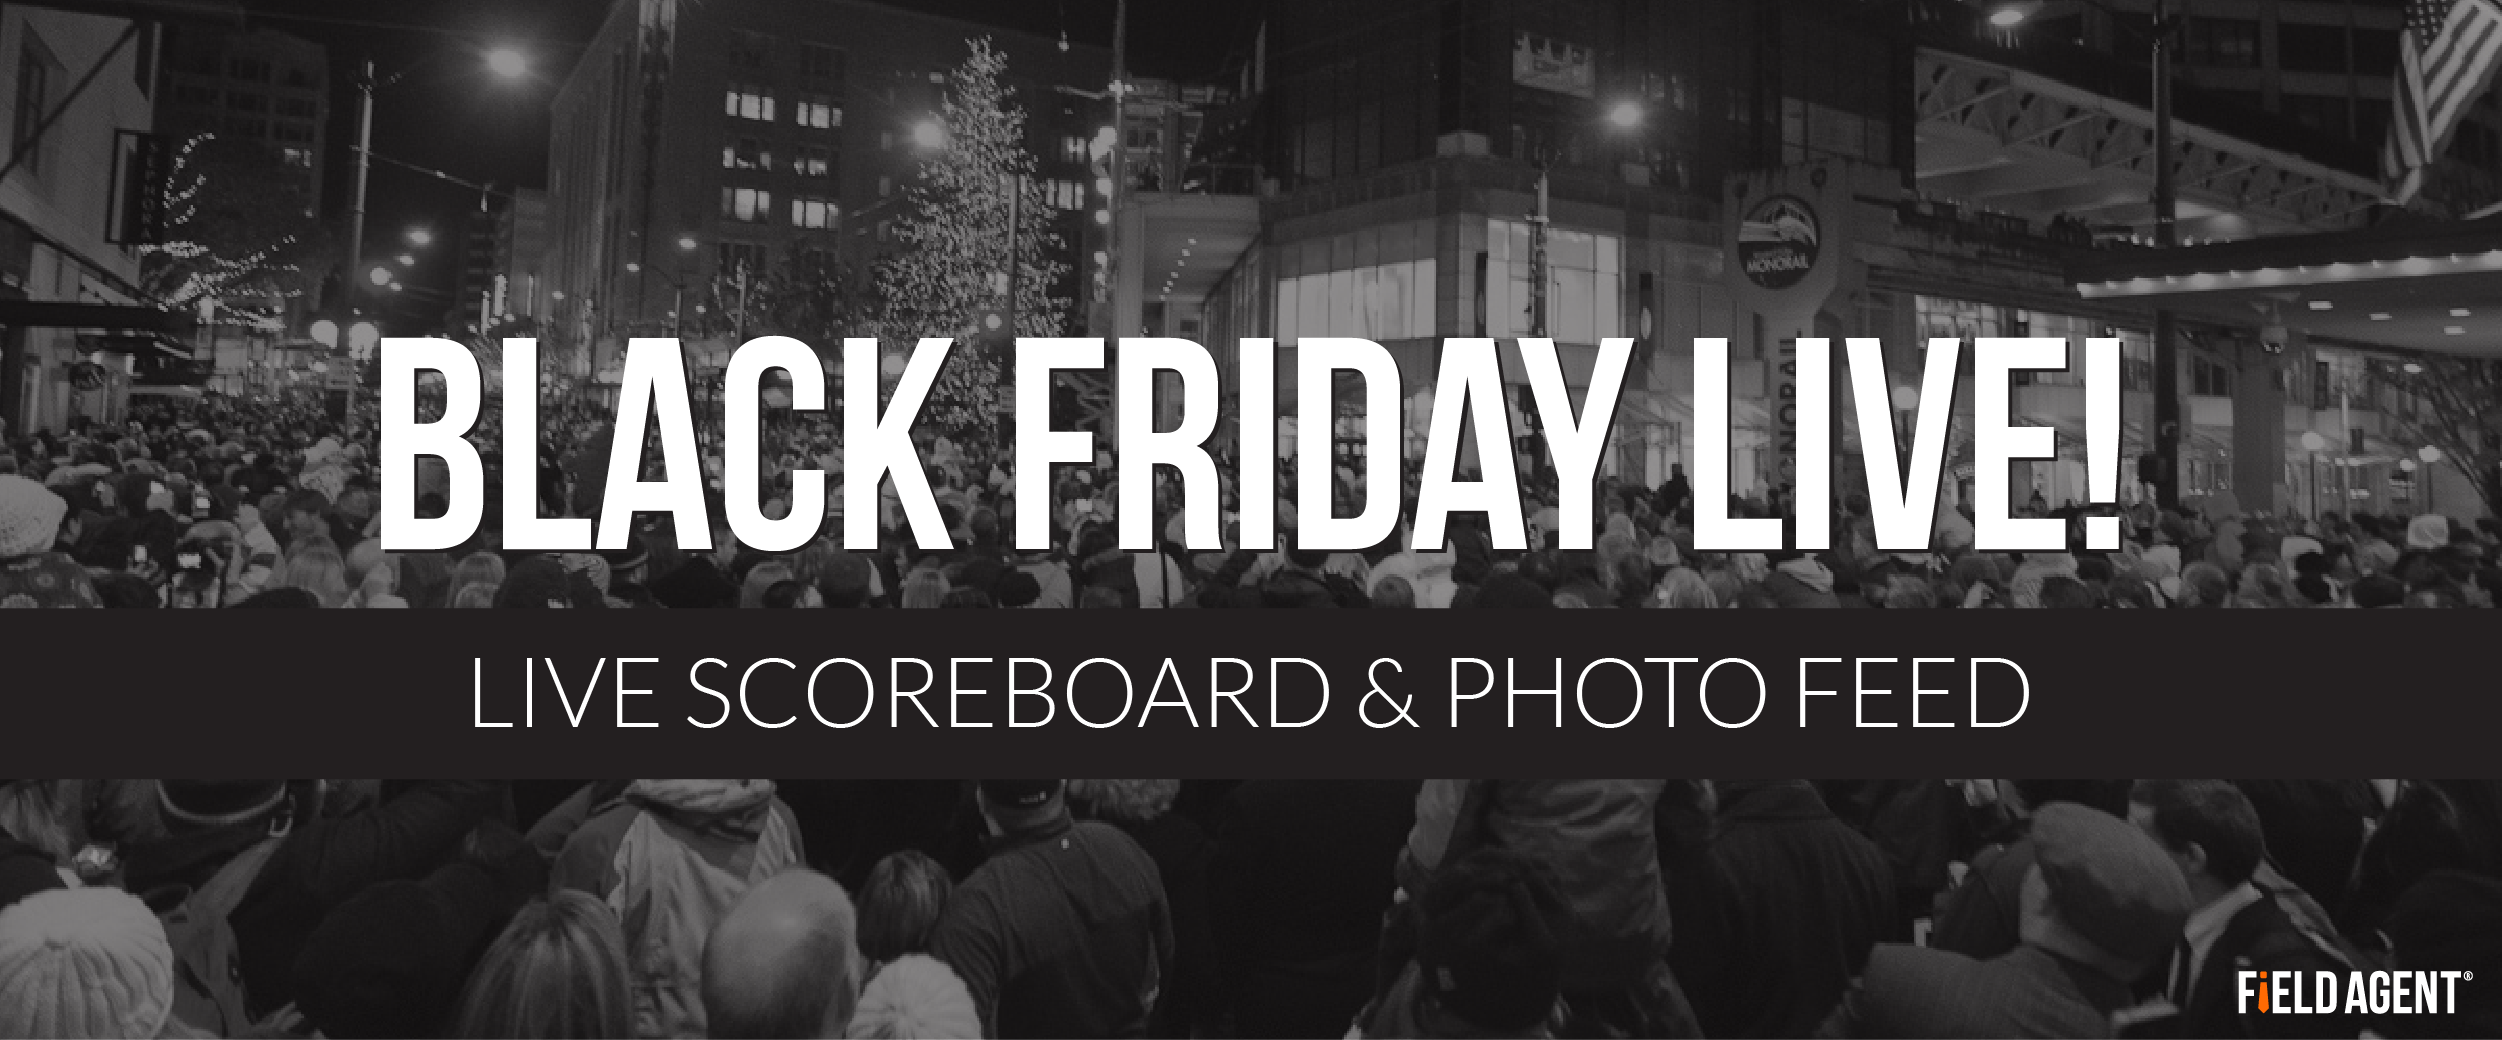 Black Friday Live! Live Scoreboard & Photo Feed